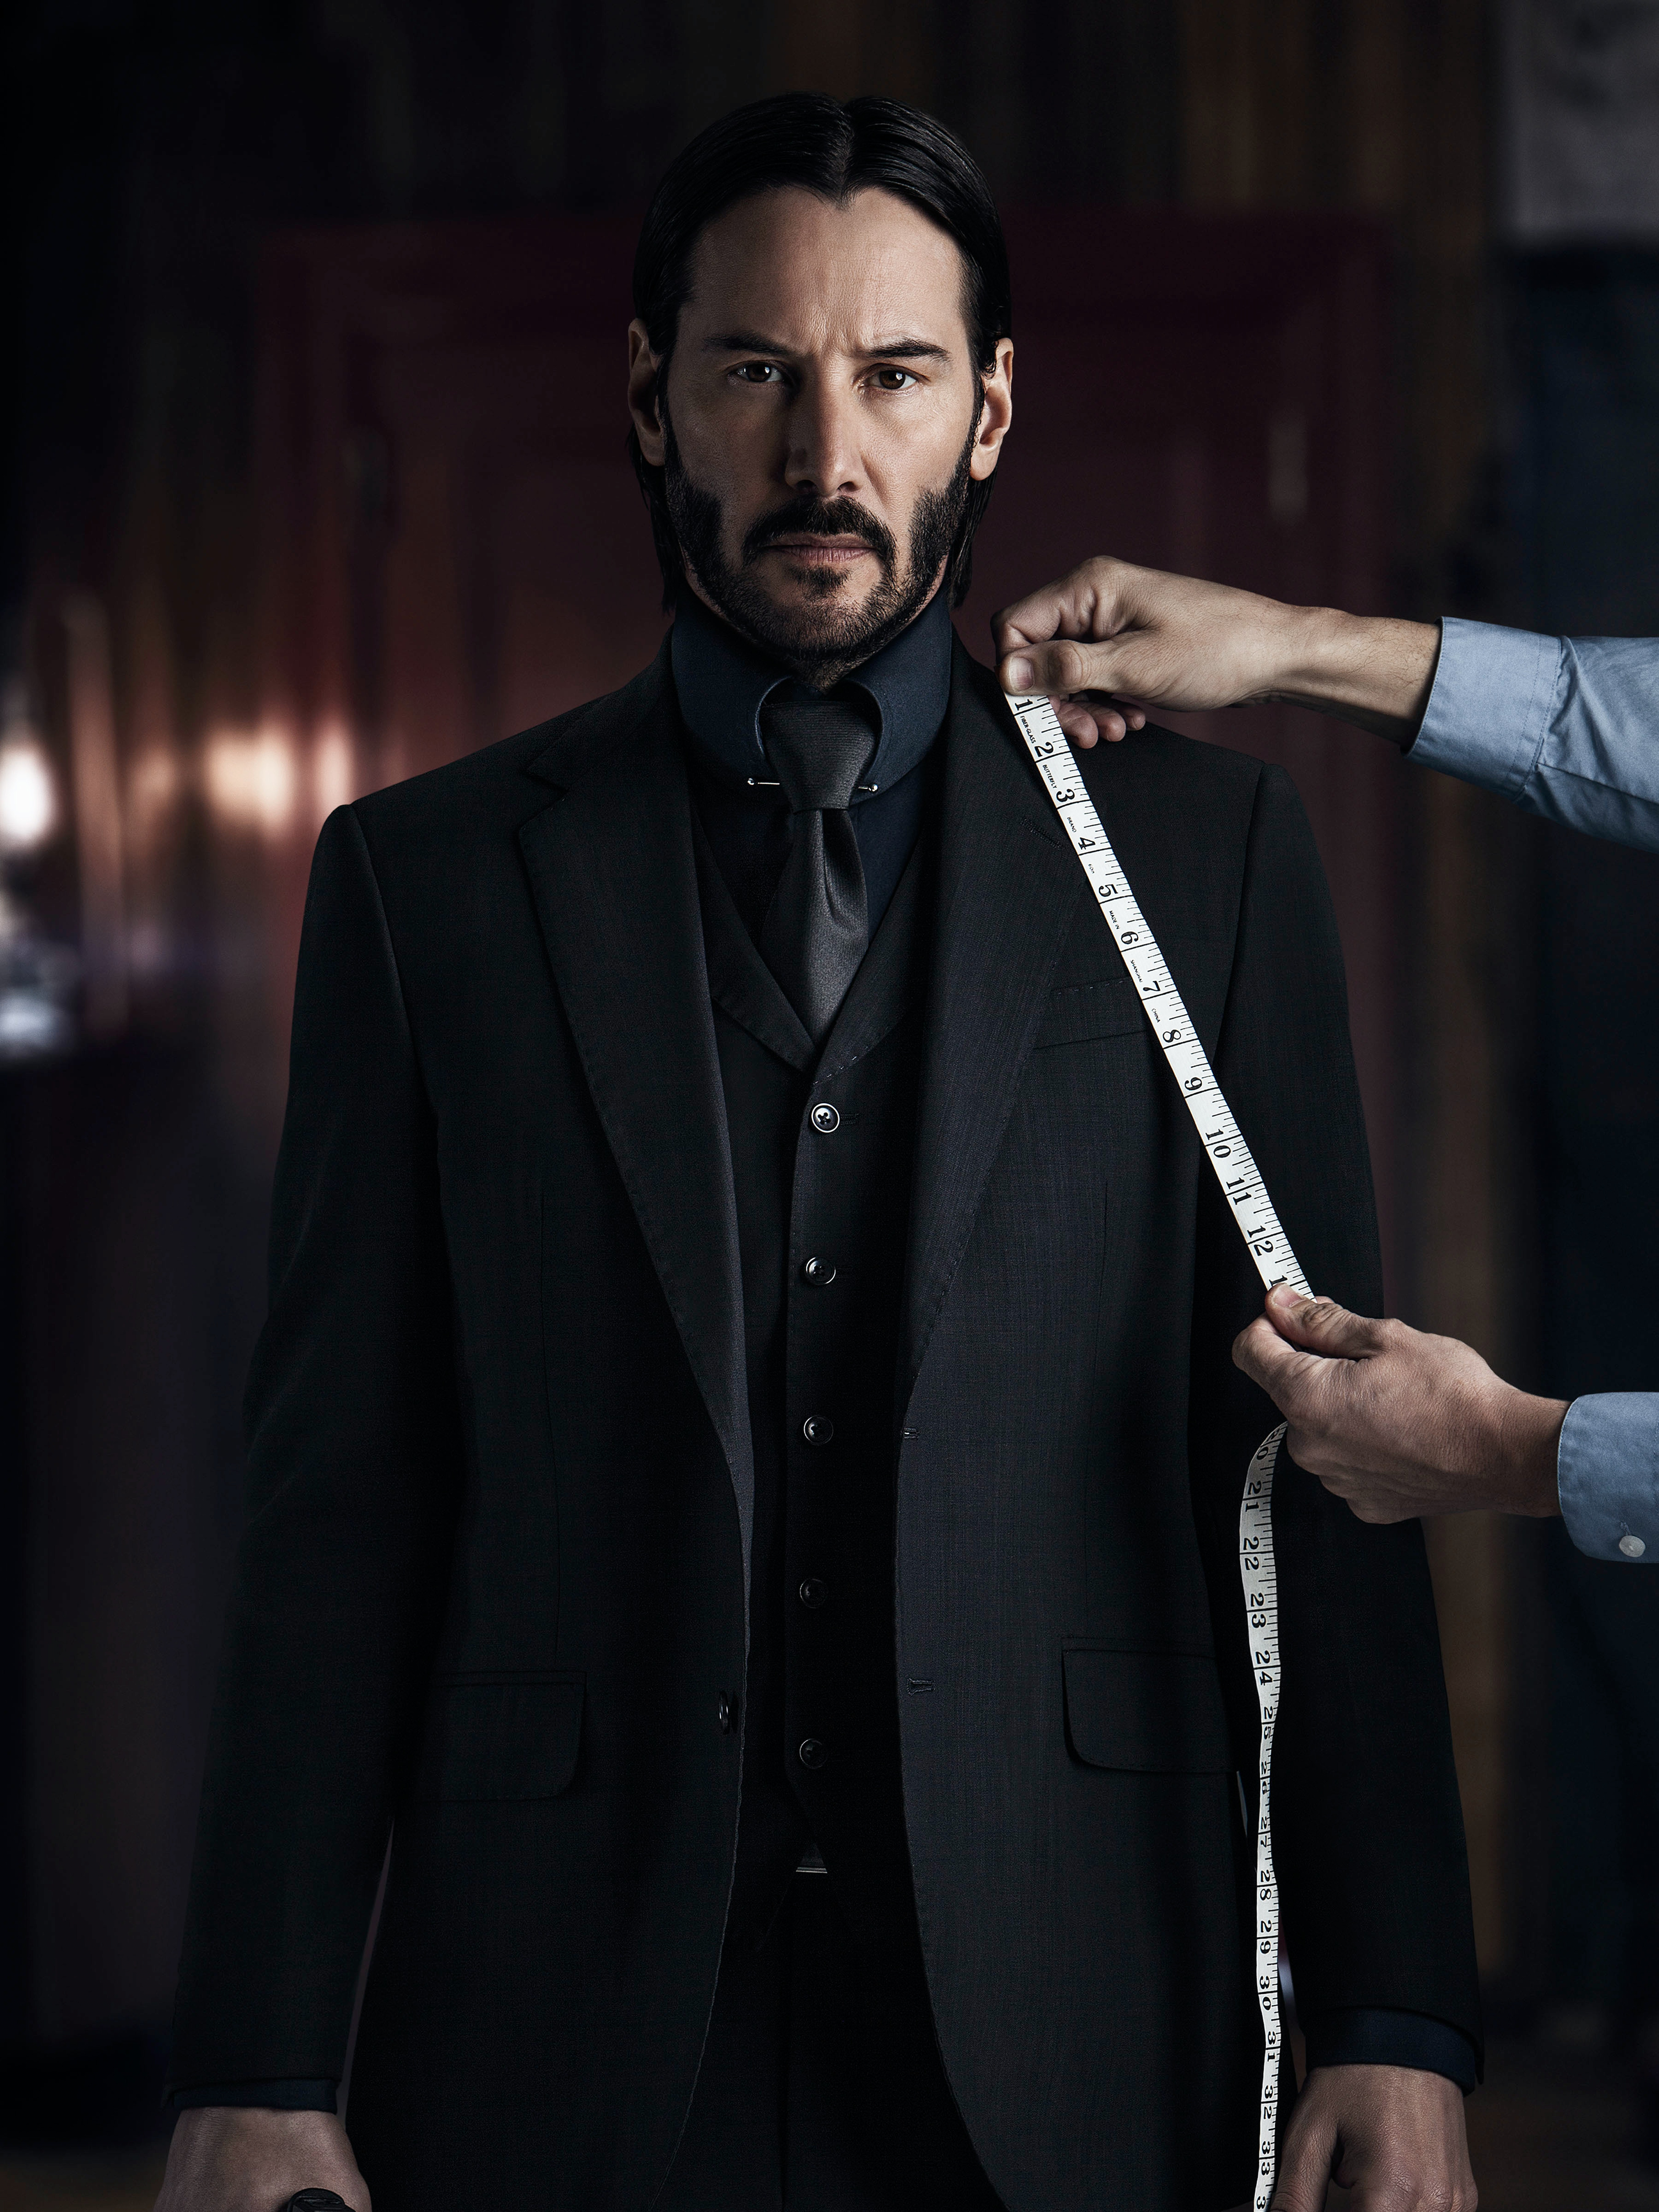 Poster for Summit Entertainment's 'John Wick 2'